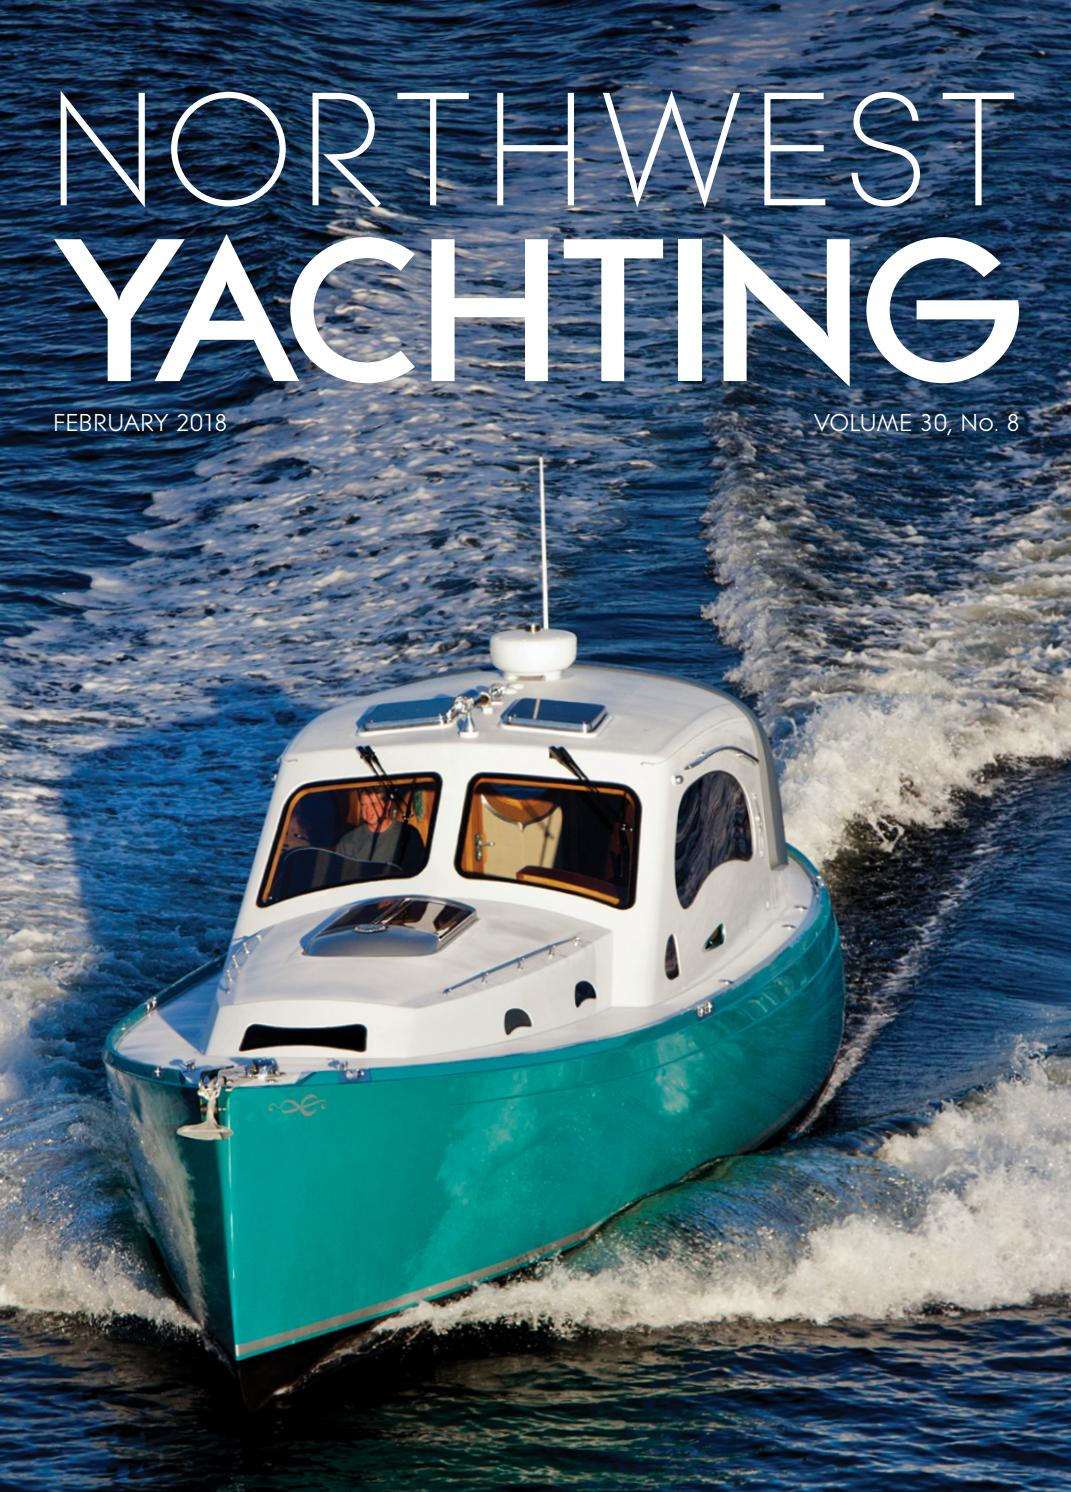 Northwest Yachting February 2017 By Issuu Ez Wiring Harness For 1987 Ford Truck